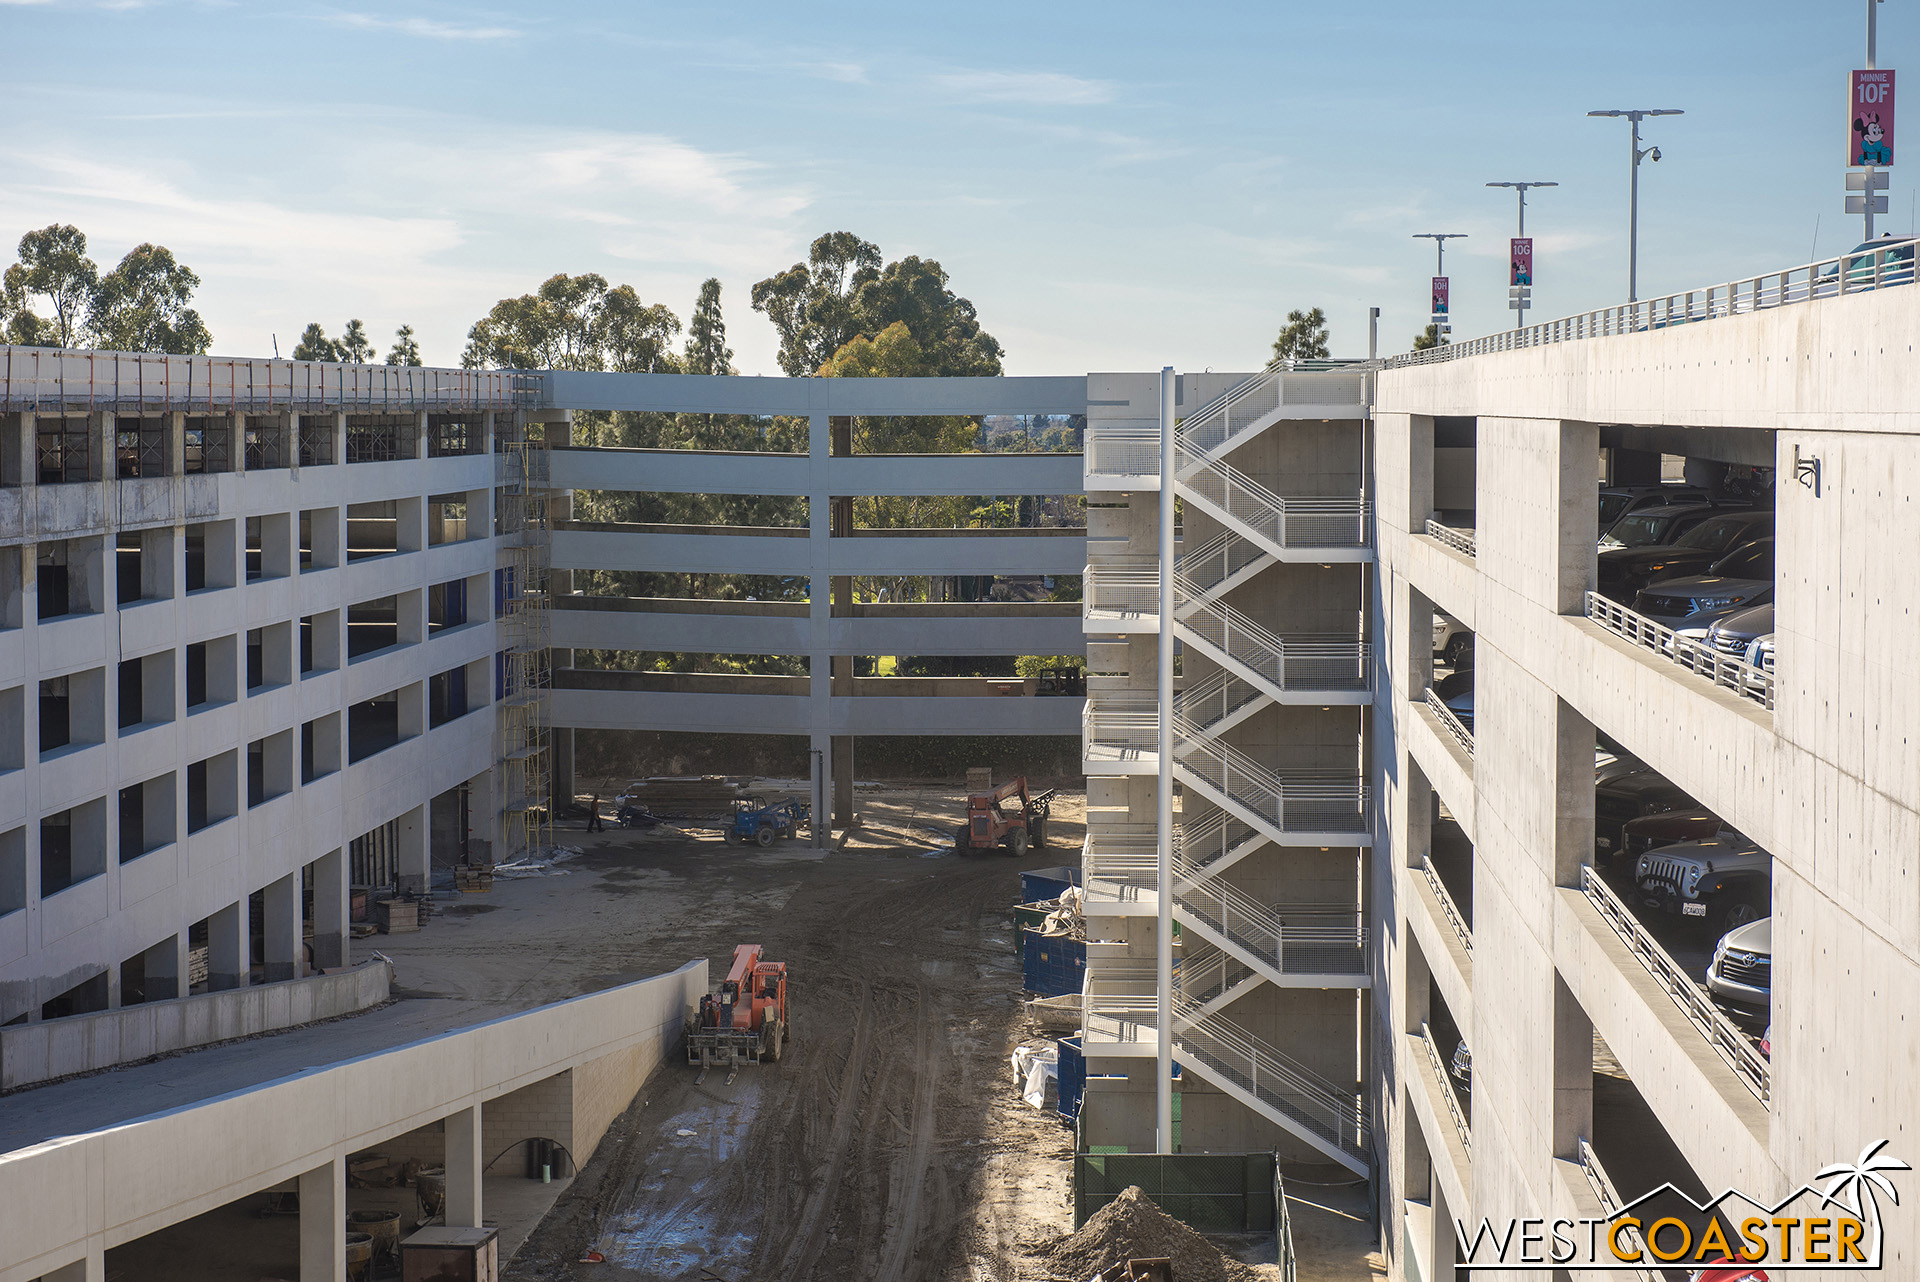 Six floors of expanded parking capacity right here!  The rear bridge will allow drivers in the current Mickey and Friends structure to drive across into the expansion.  The other bridge allows them to come back and eventually exit the structure down to Disneyland Drive.